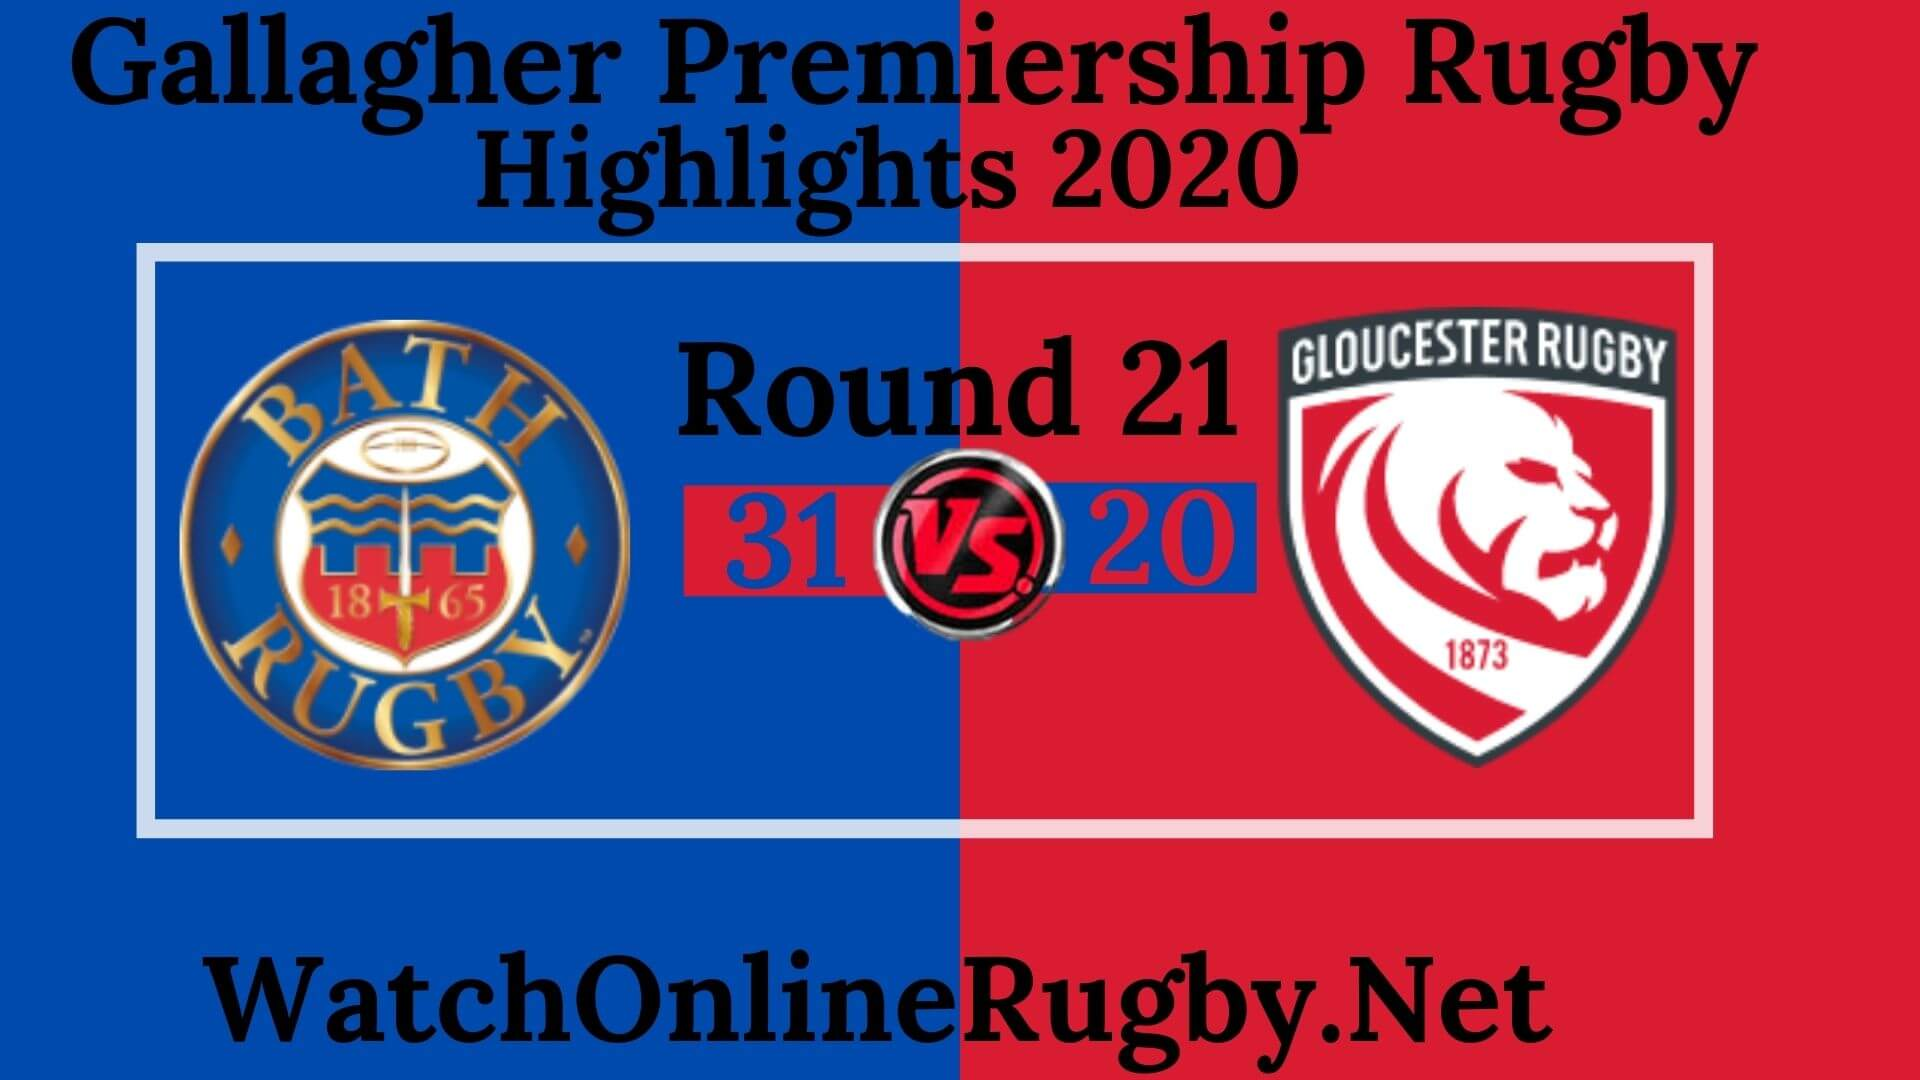 Bath Rugby vs Gloucester Highlights 2020 Rd 21